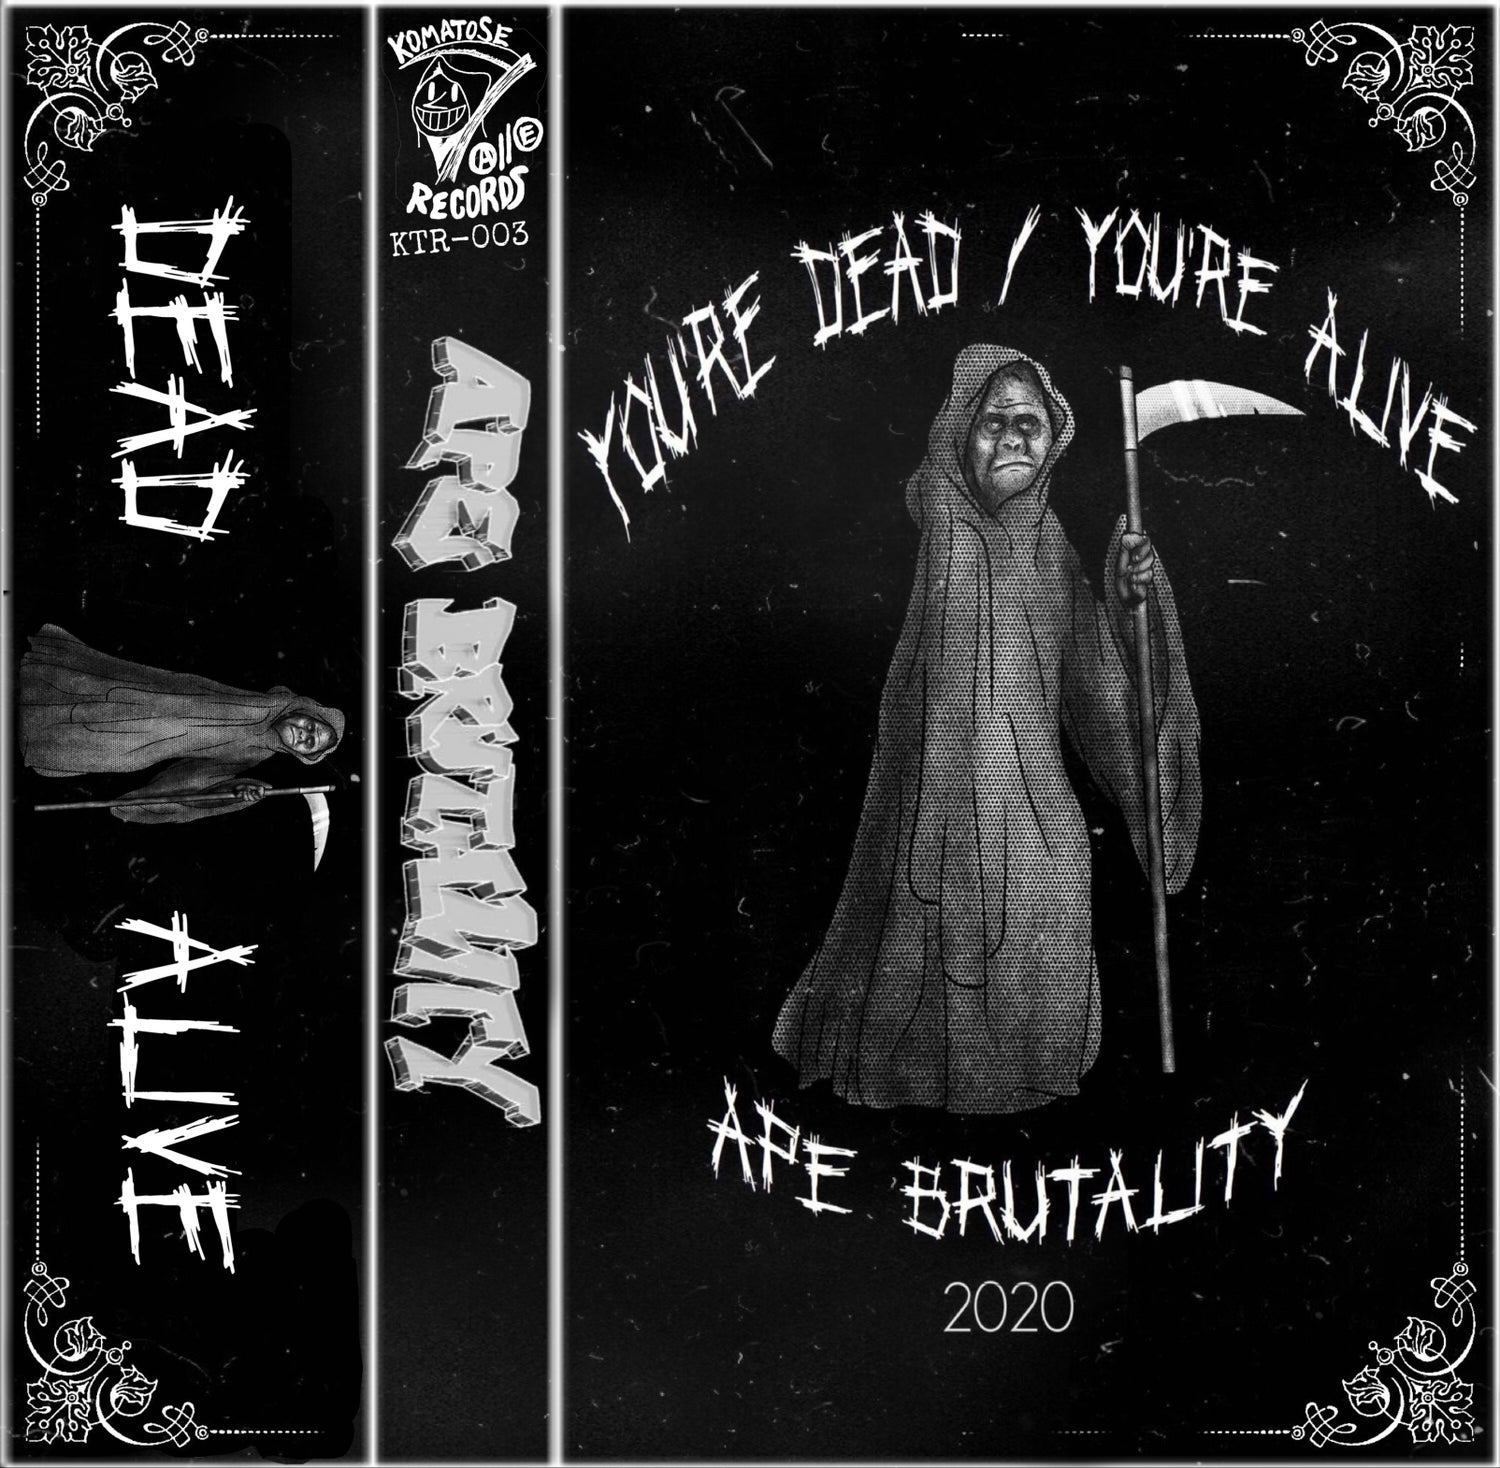 APE BRUTALITY-YOU'RE DEAD/YOU'RE ALIVE